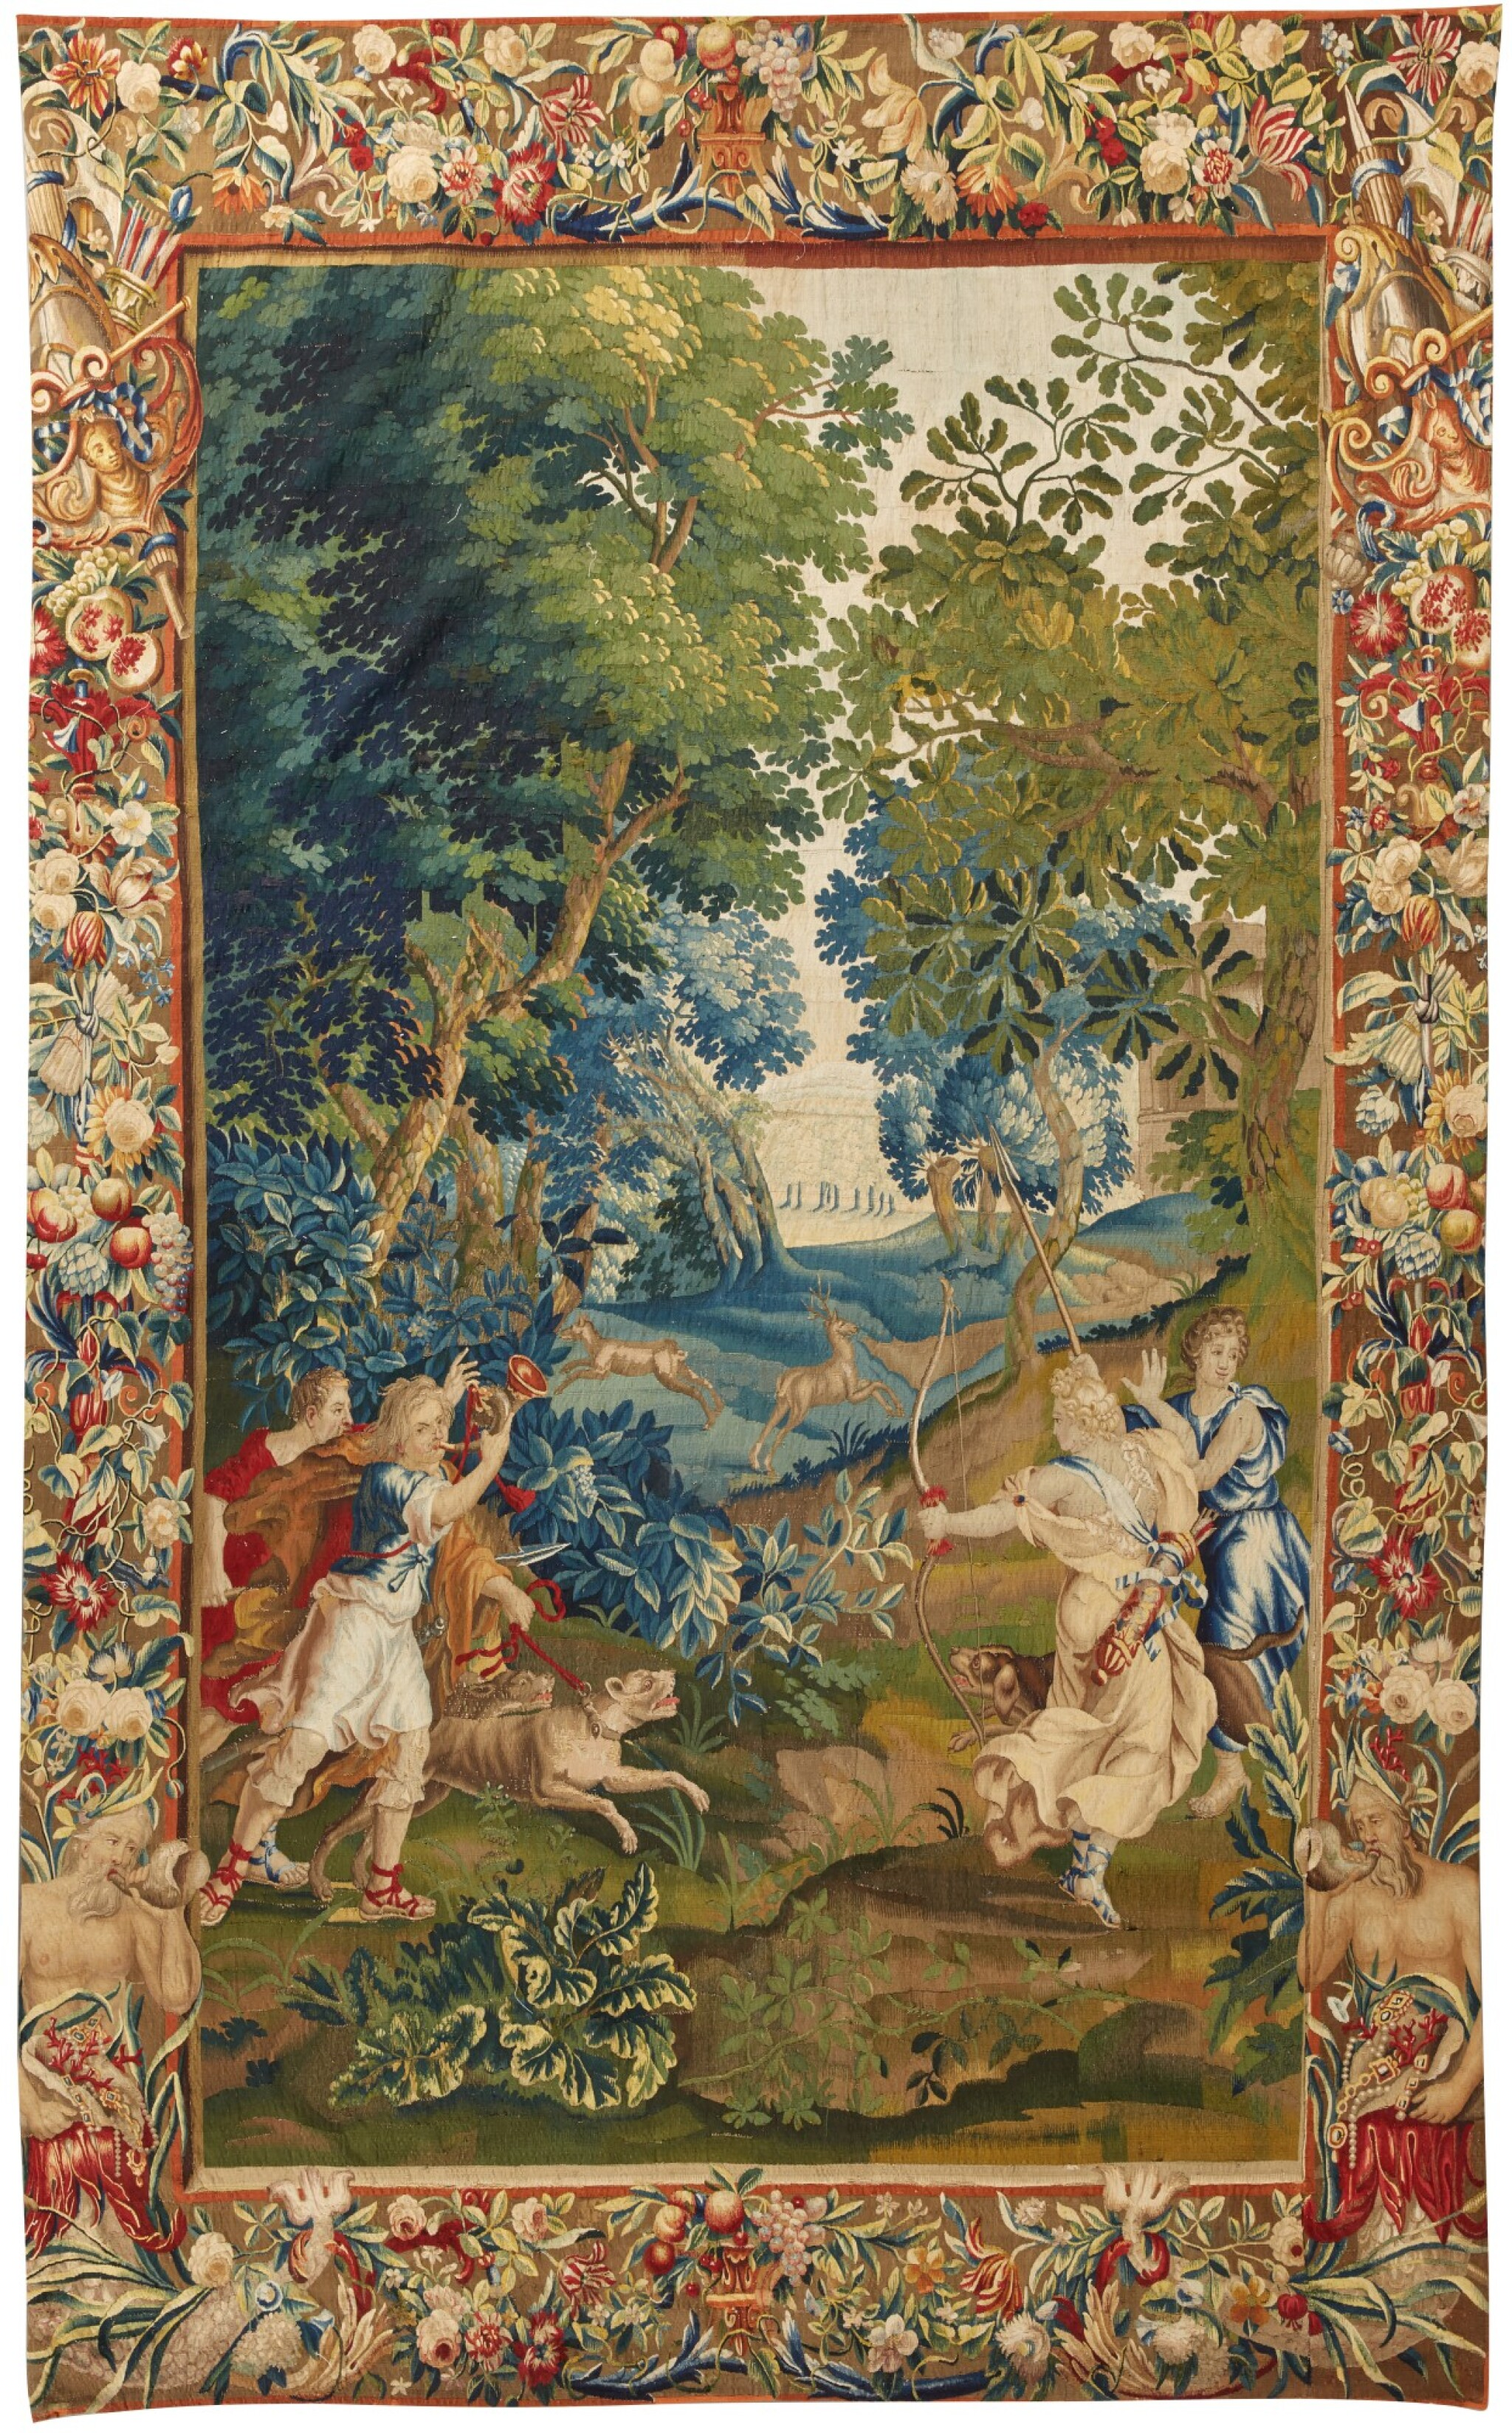 View full screen - View 1 of Lot 91. A Flemish mythological tapestry, Brussels or Antwerp workshop, circa 1700-1720, possibly from the Story of Diana, after designs by Louis van Schoor and Pieter Spierinckx.